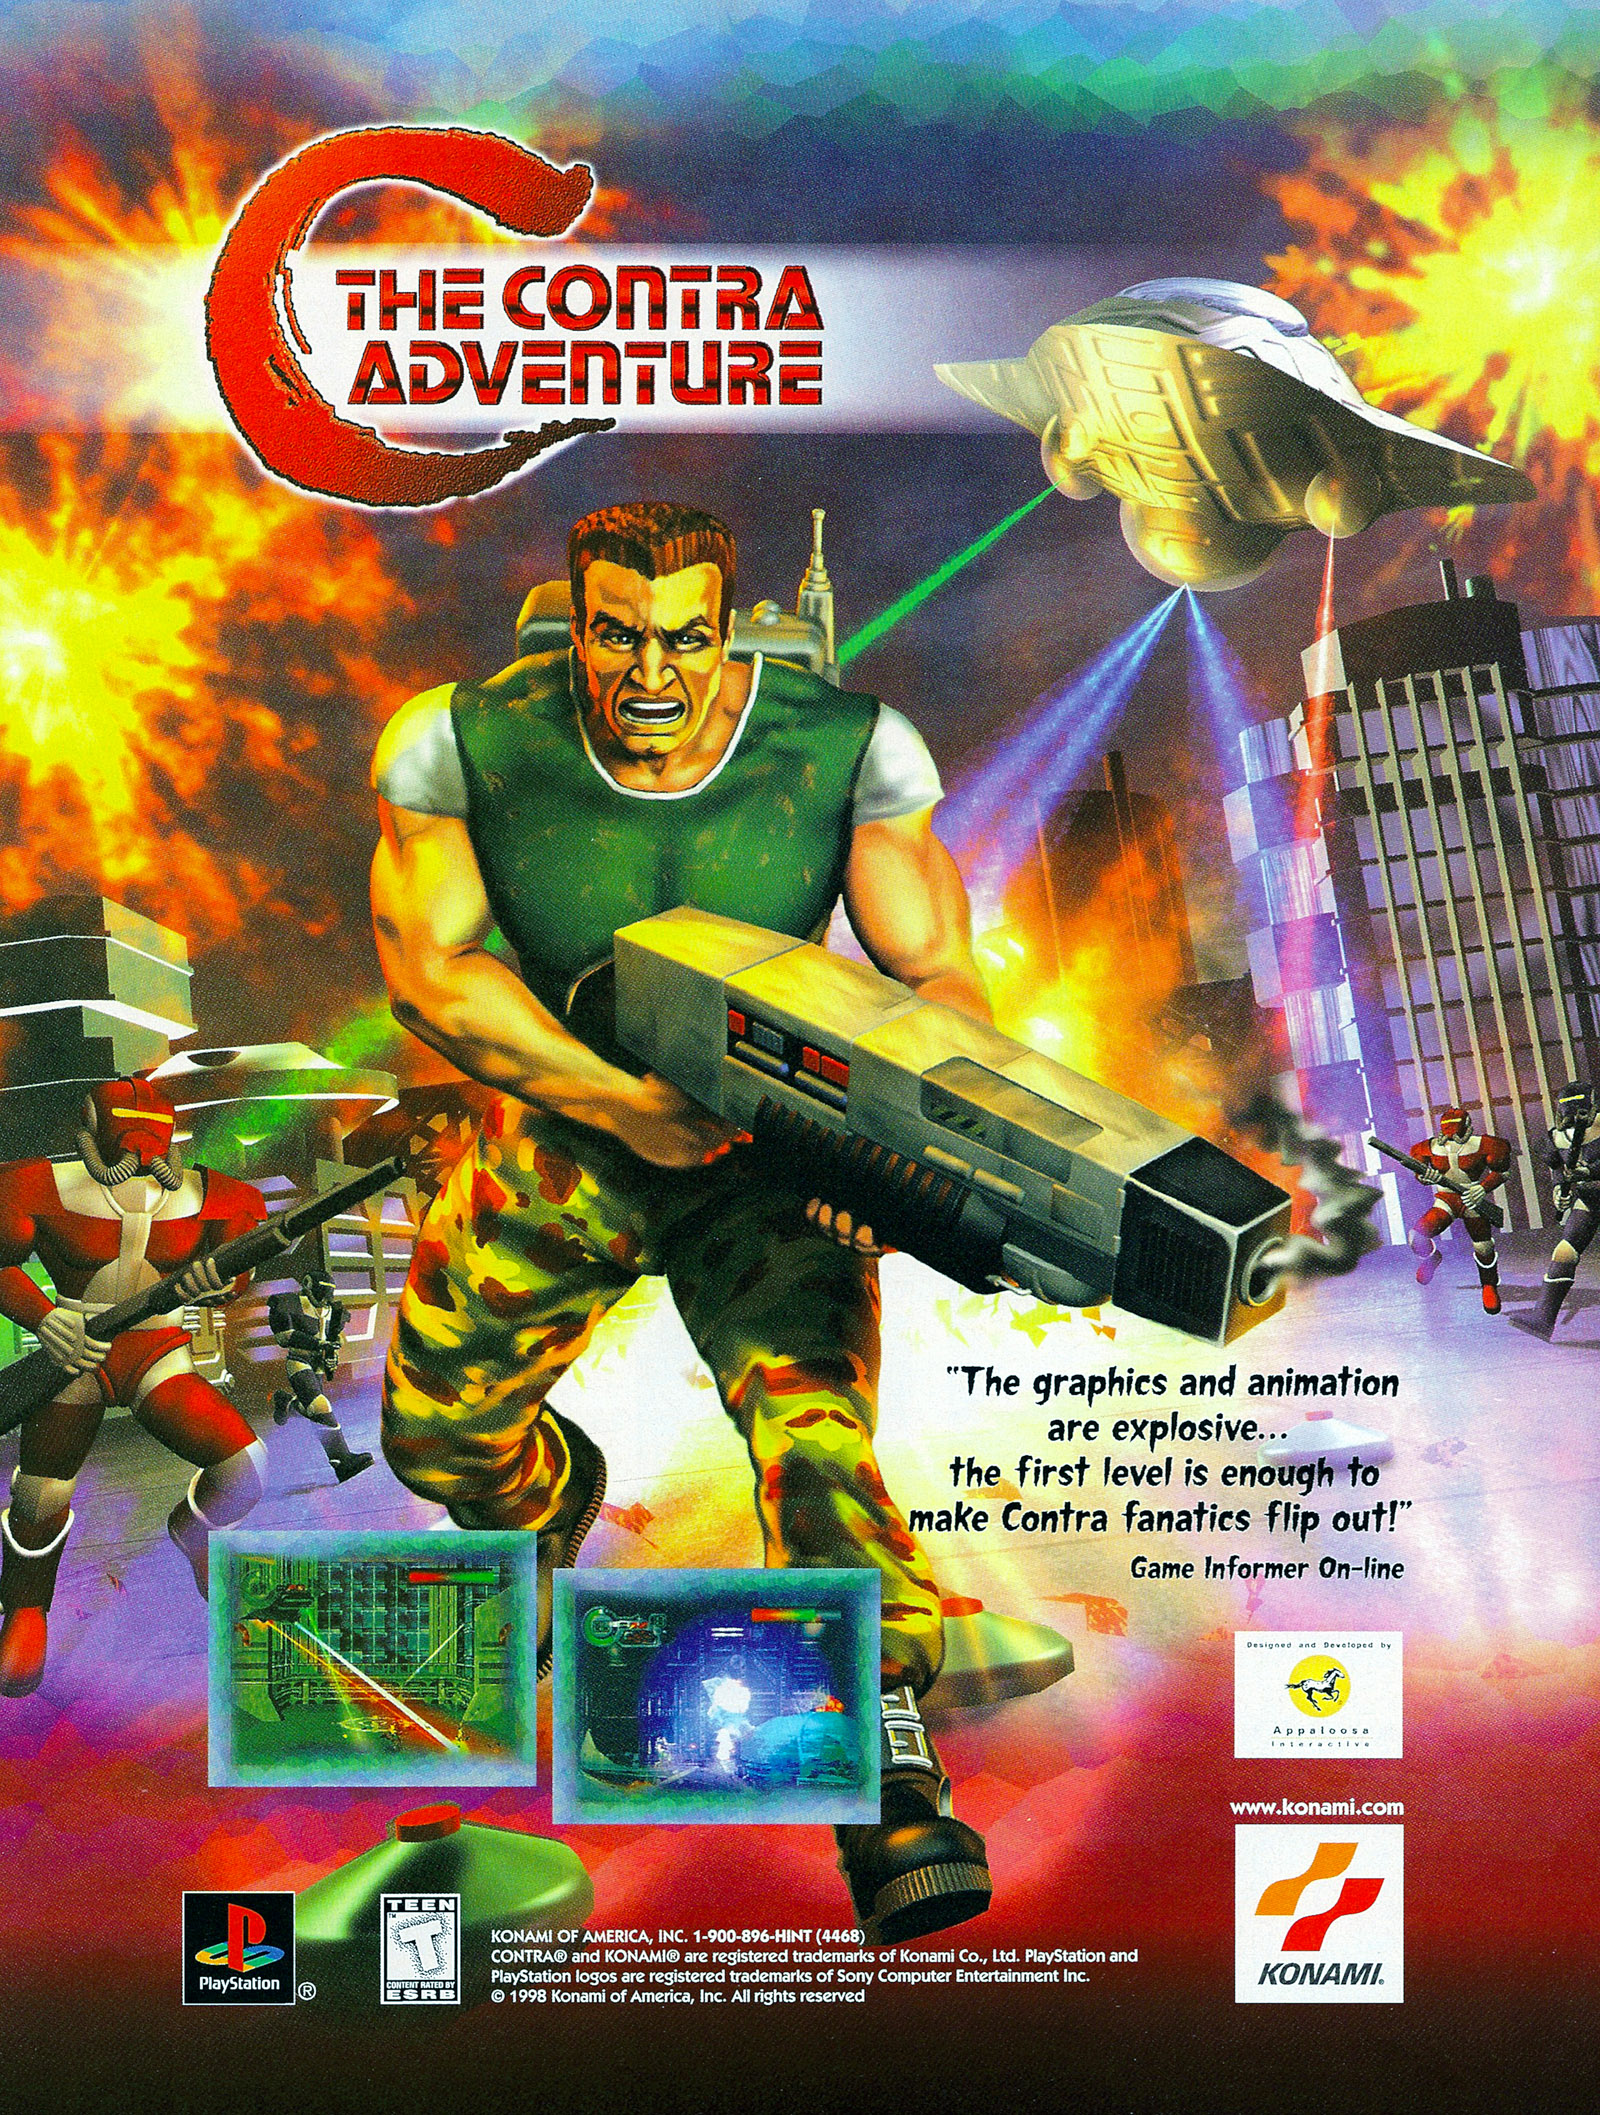 Video Game Ad of the Day: C: The Contra Adventure